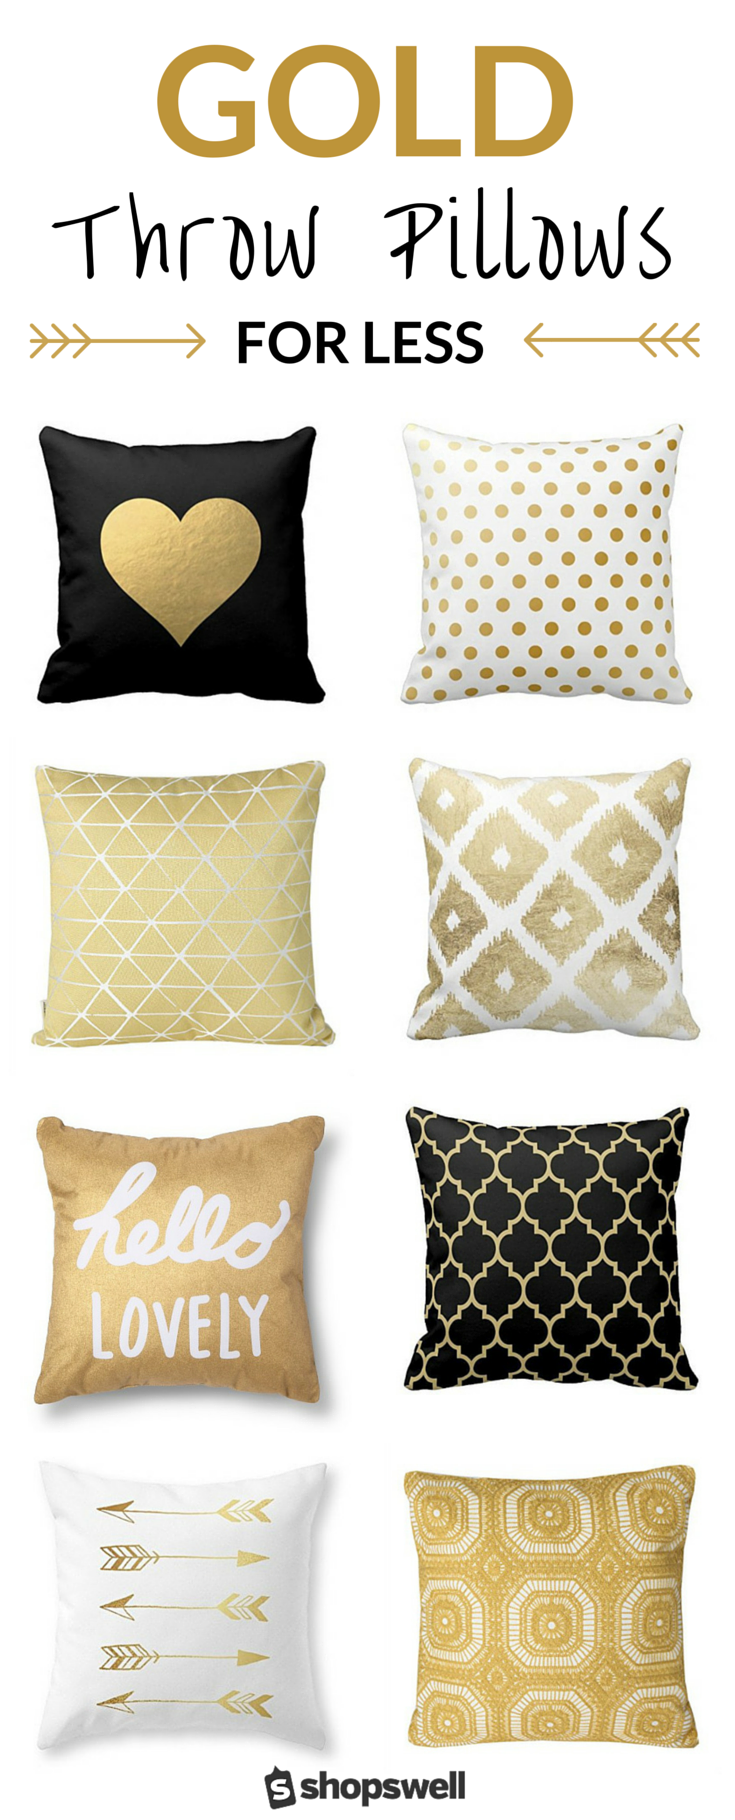 Cheap Decorative Pillows Under $10 Adorable The Midas Touch 20 Fabulously Affordable Gold Throw Pillows Inspiration Design